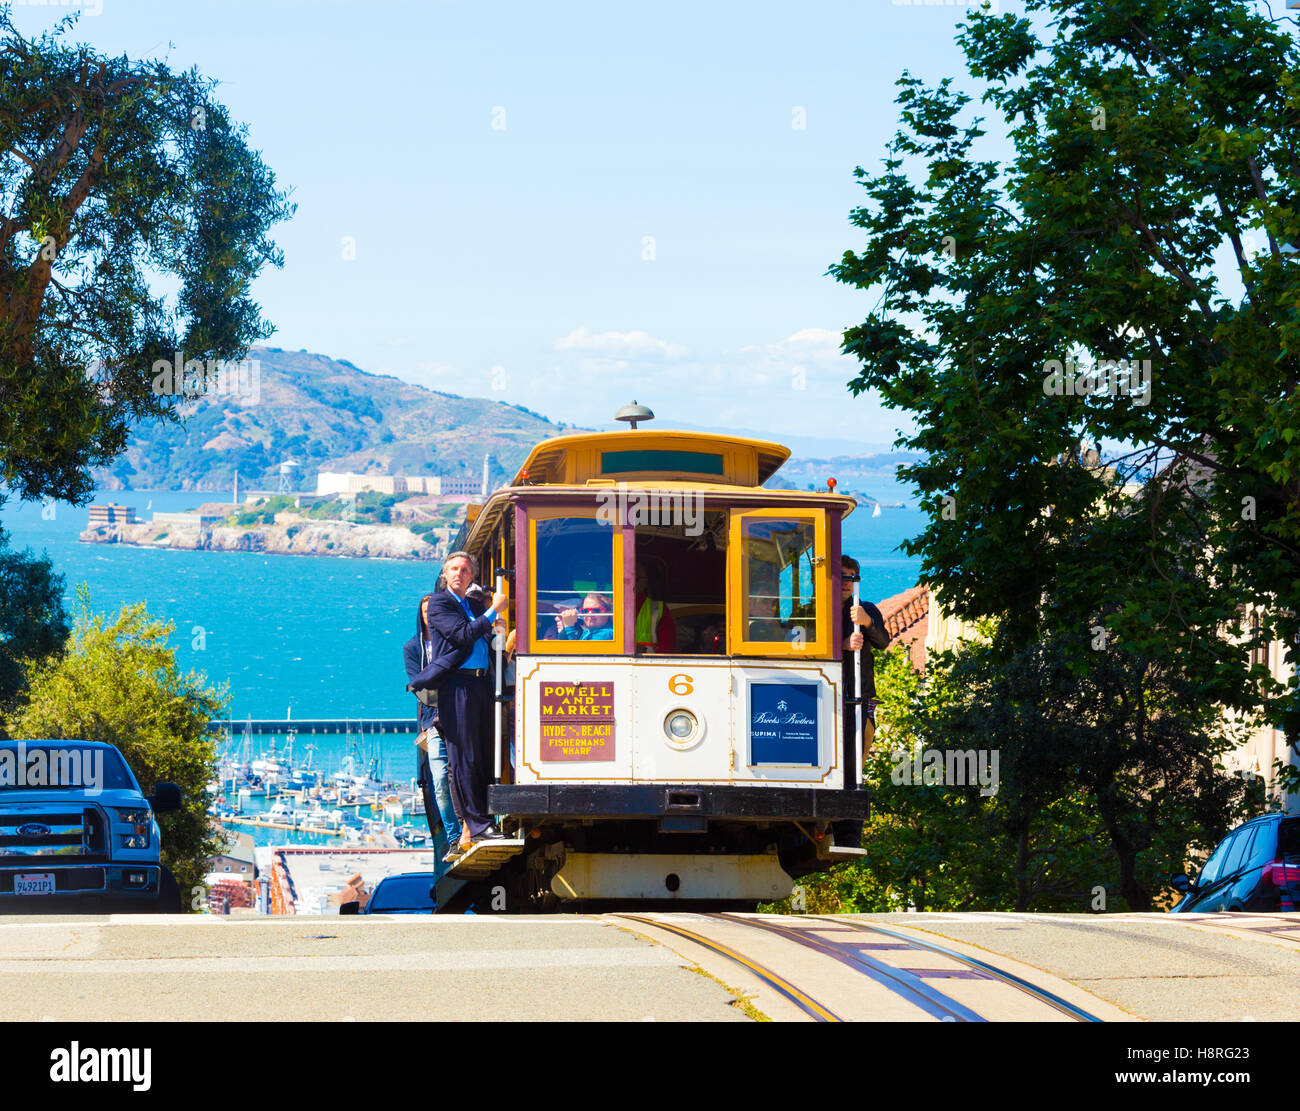 Approaching cable car climbing over crest of hill with Alcatraz Island in background - Stock Image